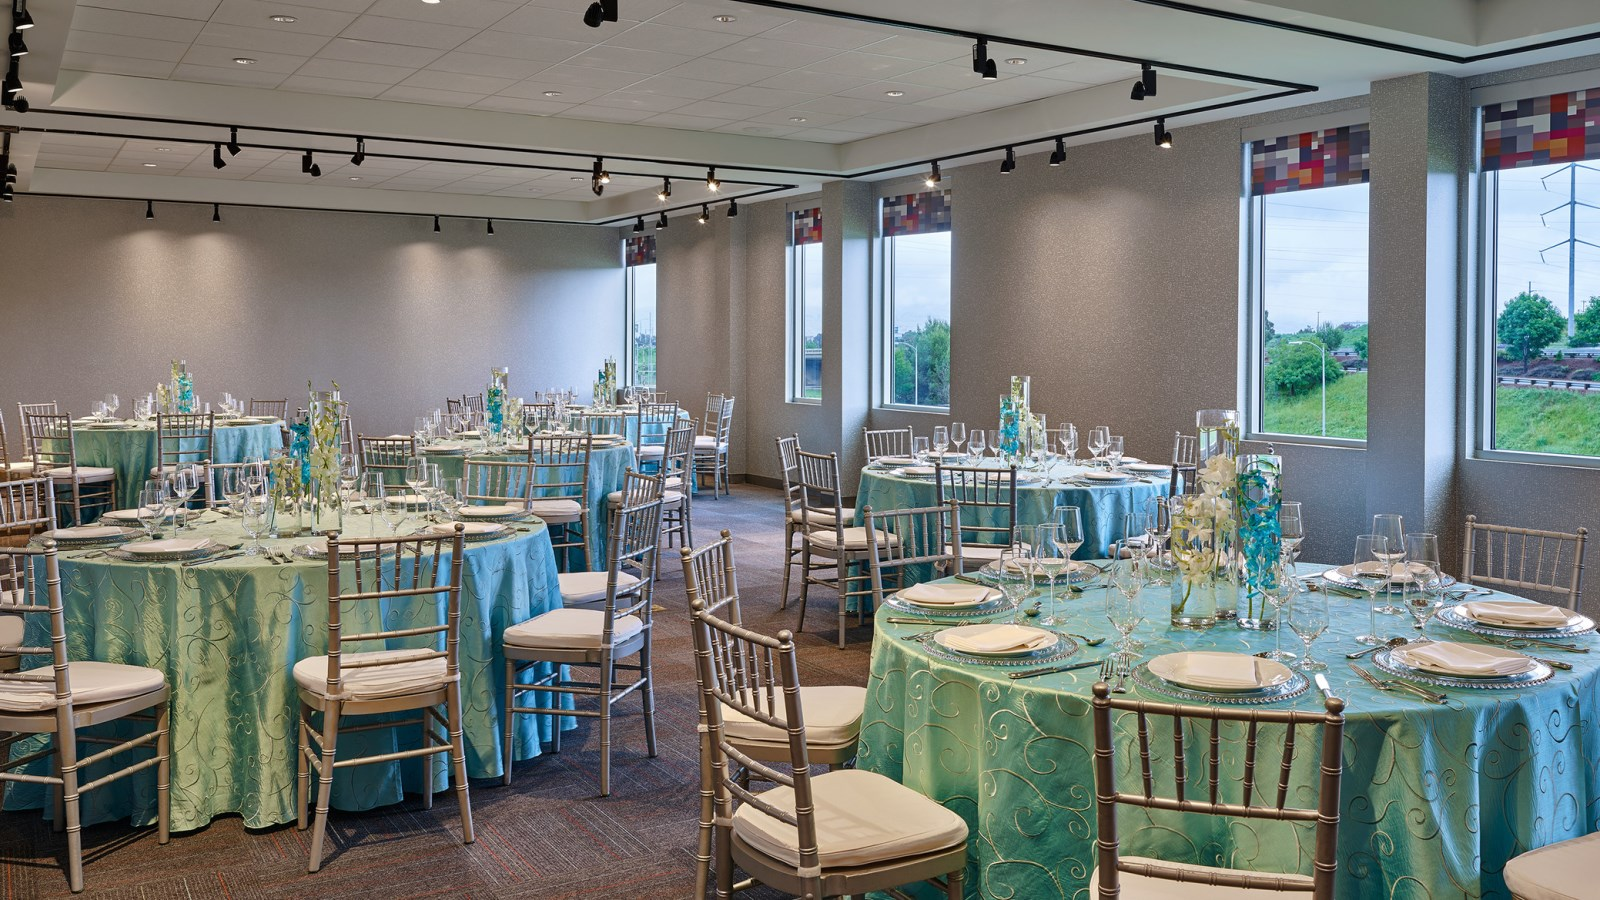 San Jose Wedding Venues - Tactic Room